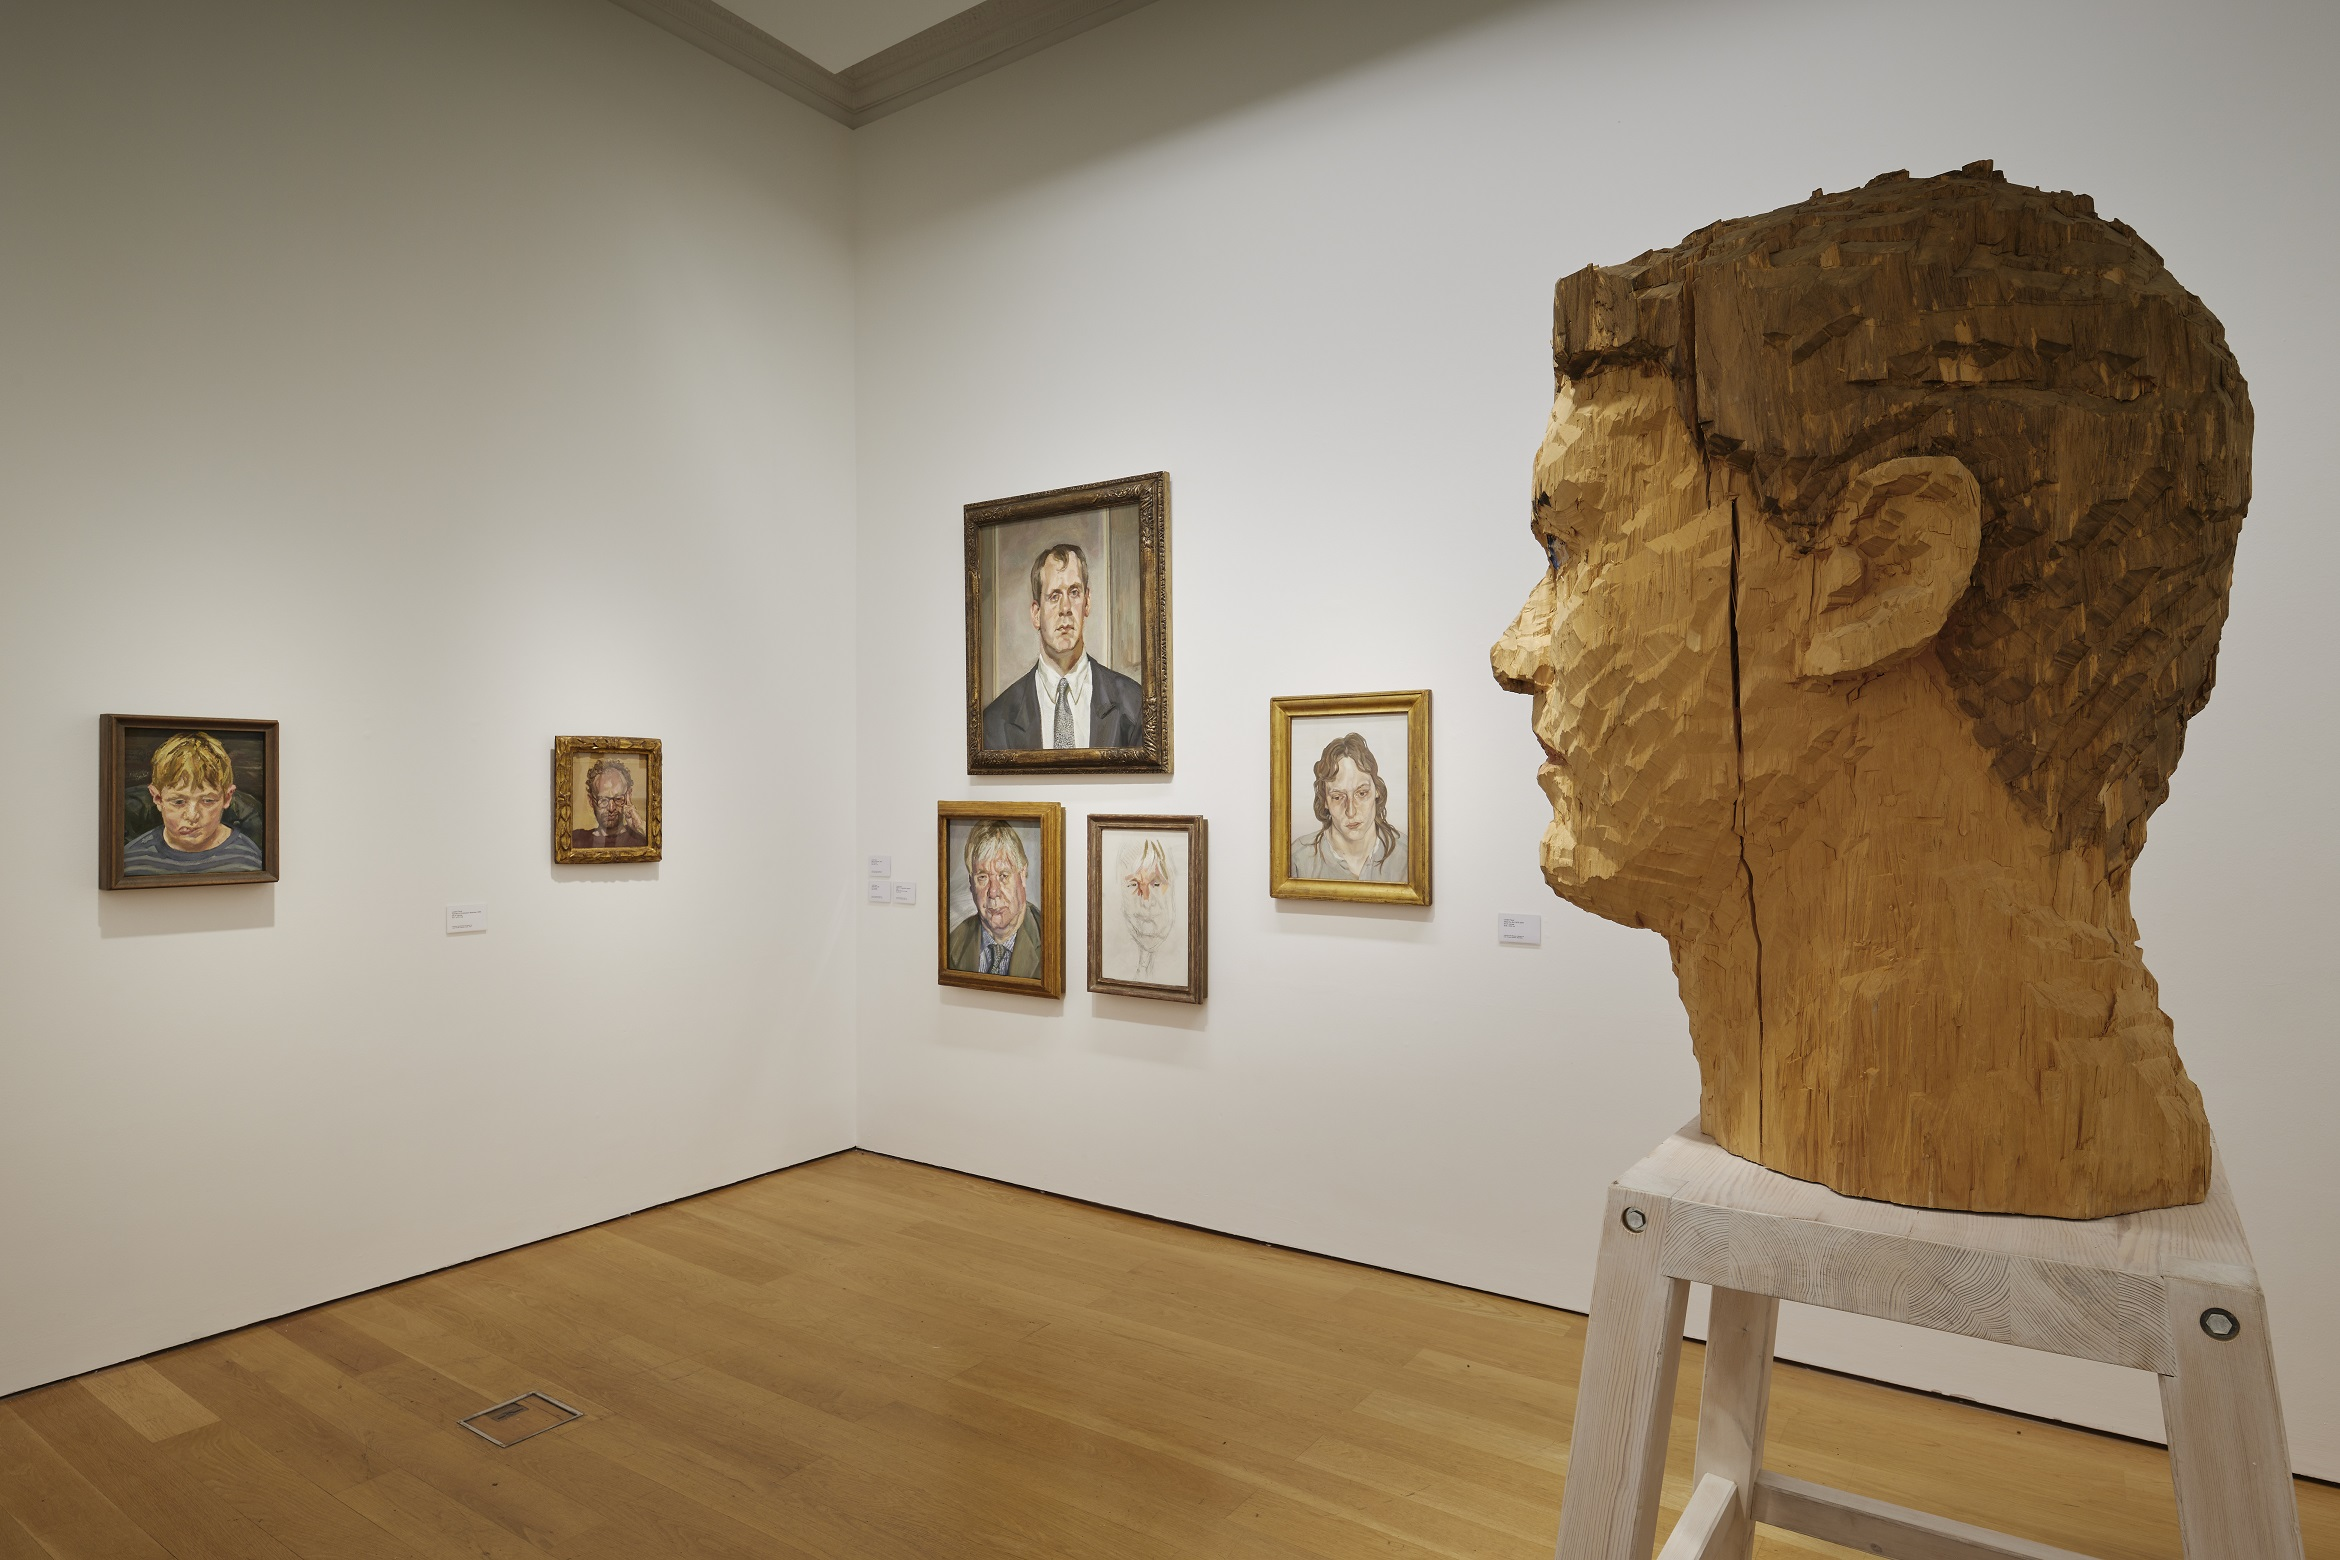 Installation view, IMMA Collection: Freud Project, Gaze. 4 October 2018 - 19 May 2019. Photo: Ros Kavanagh